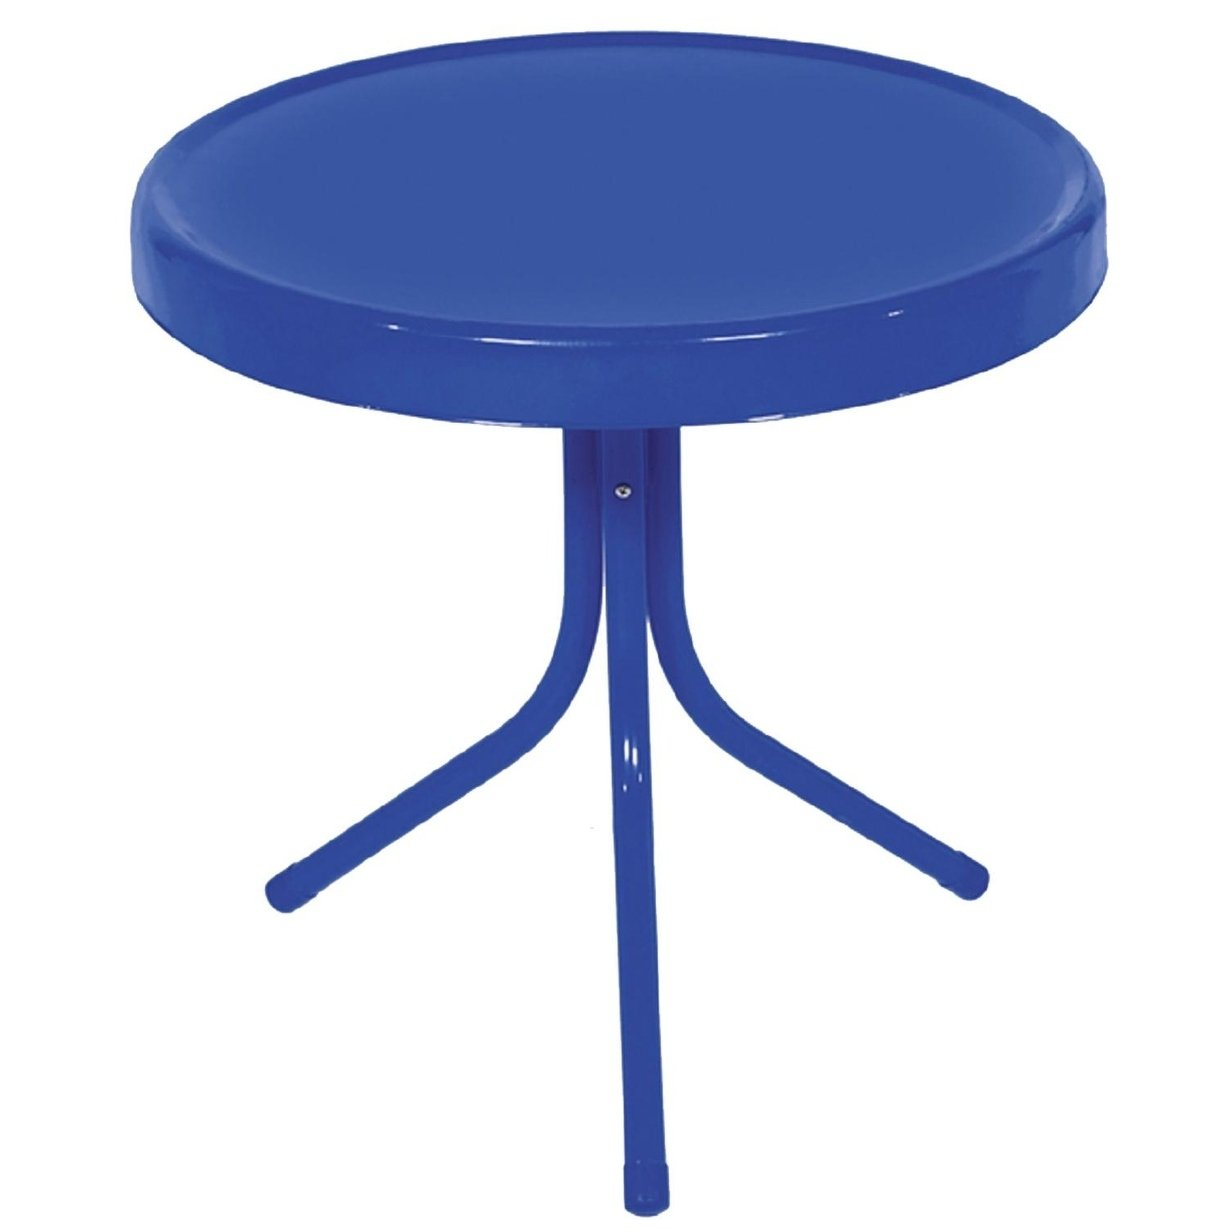 electric blue retro metal tulip outdoor side table free shipping today reclaimed wood round end threshold rustic accent beverage cooler best drum throne hobby lobby patio